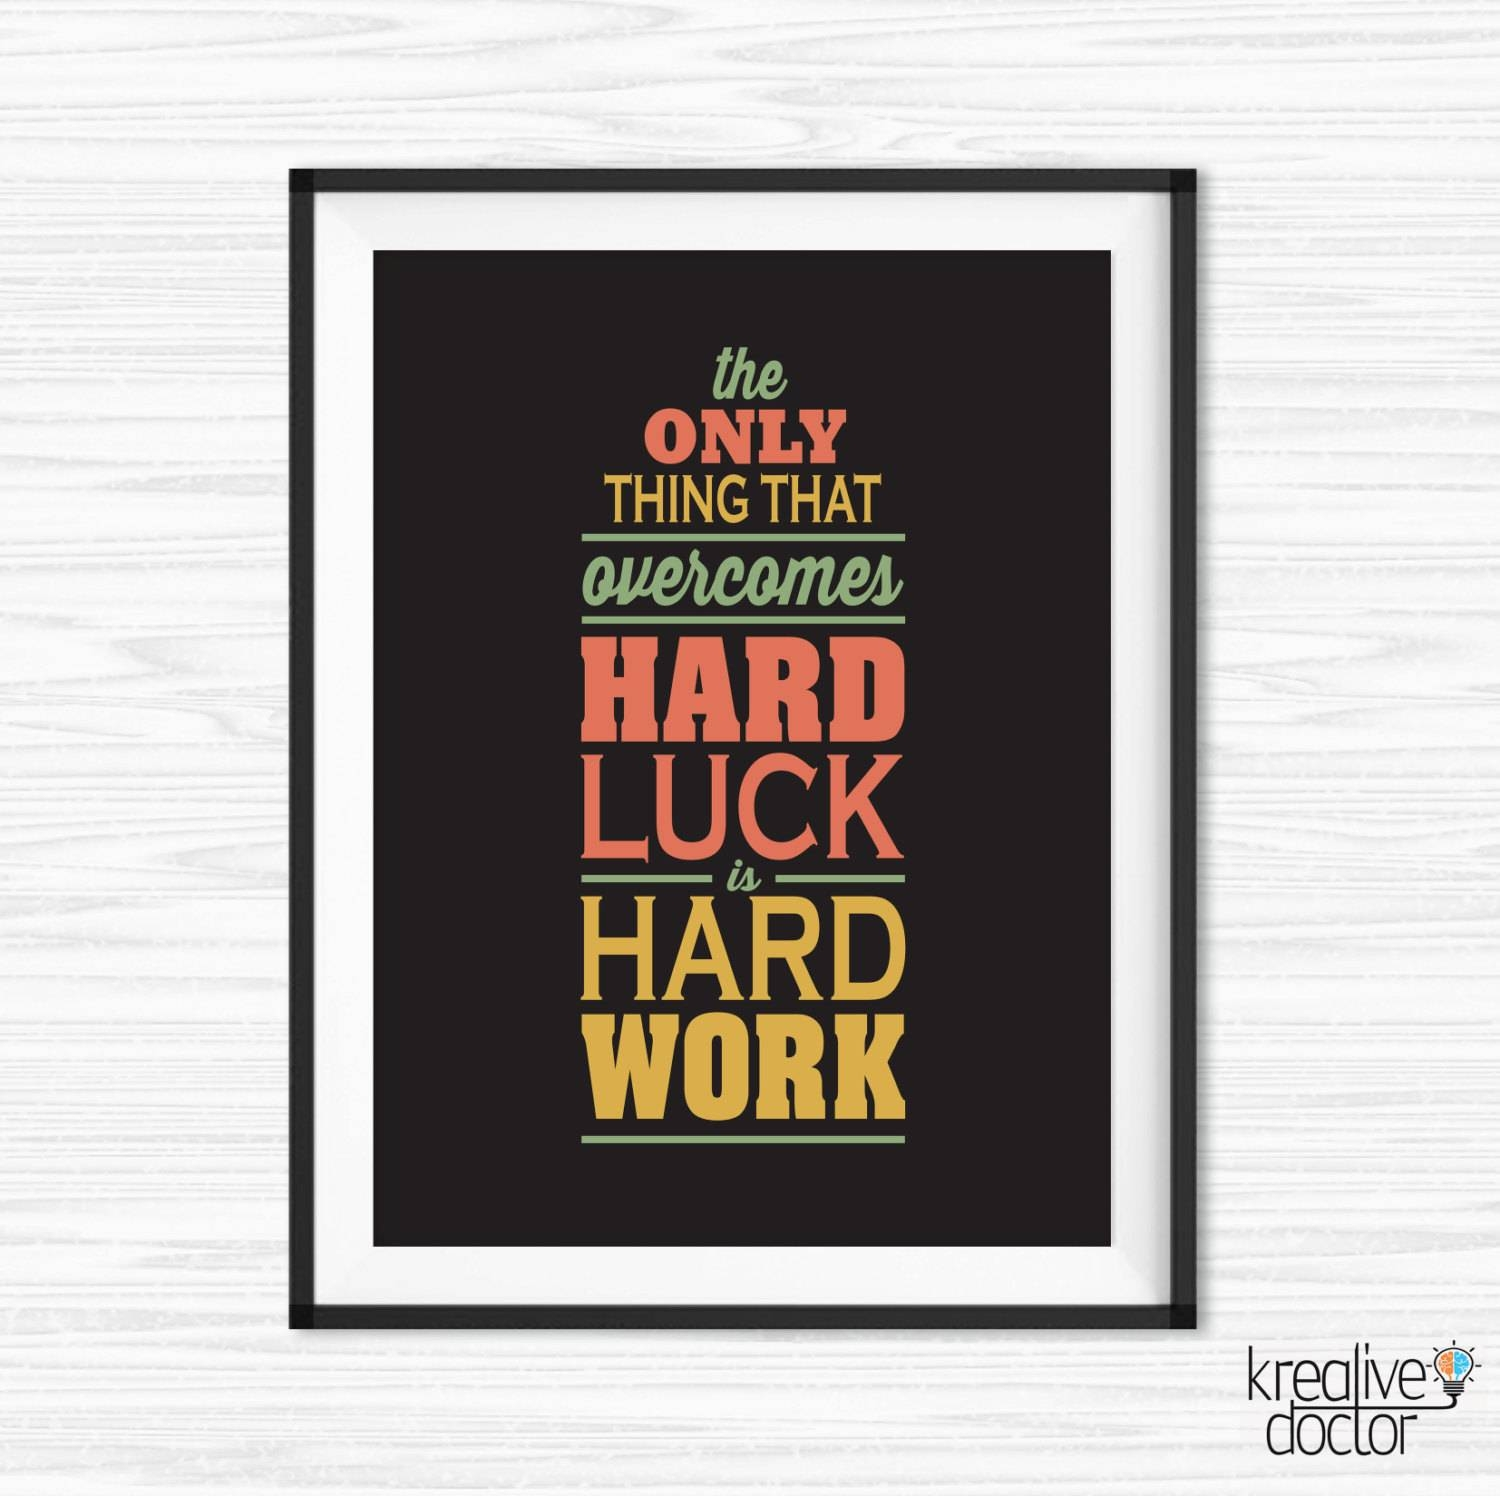 Work Hard Quote Office Wall Art Motivational Wall Decor With Regard To Most Up To Date Inspirational Wall Art For Office (View 16 of 20)